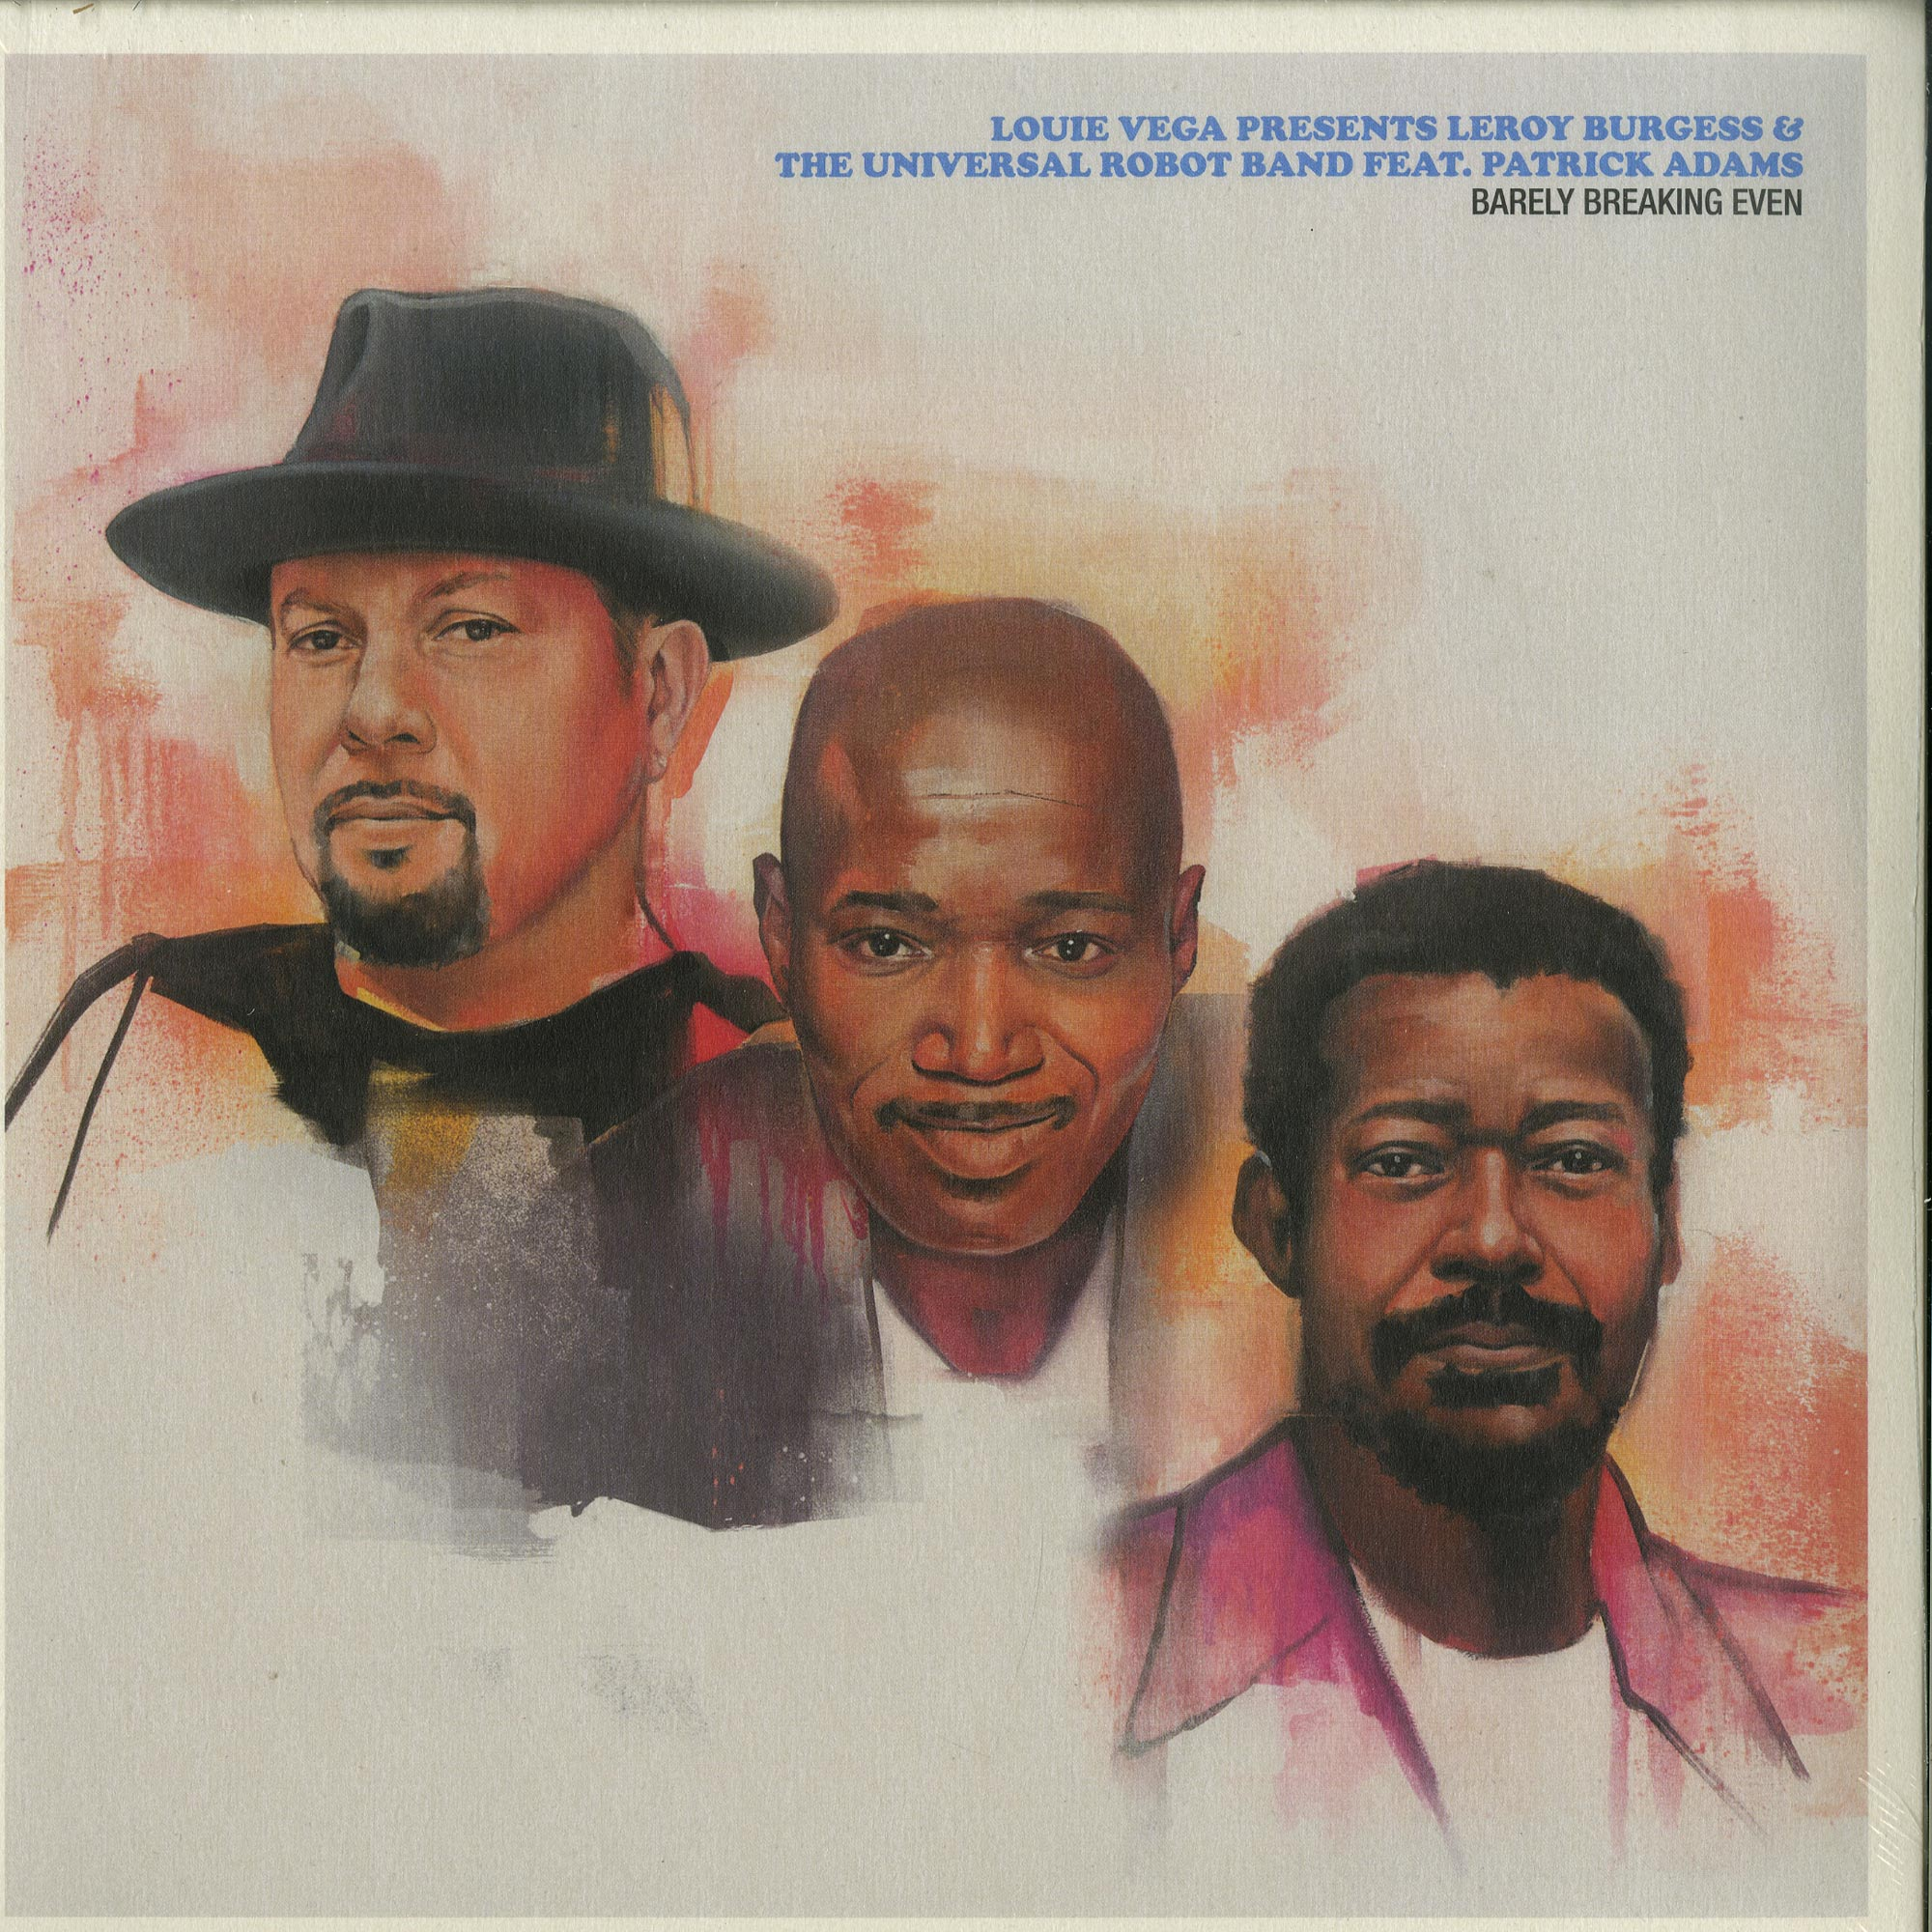 Louie Vega Pres Leroy Burgess & The Universal Robot Band ft. Patrick Adams - BARELY BREAKING EVEN